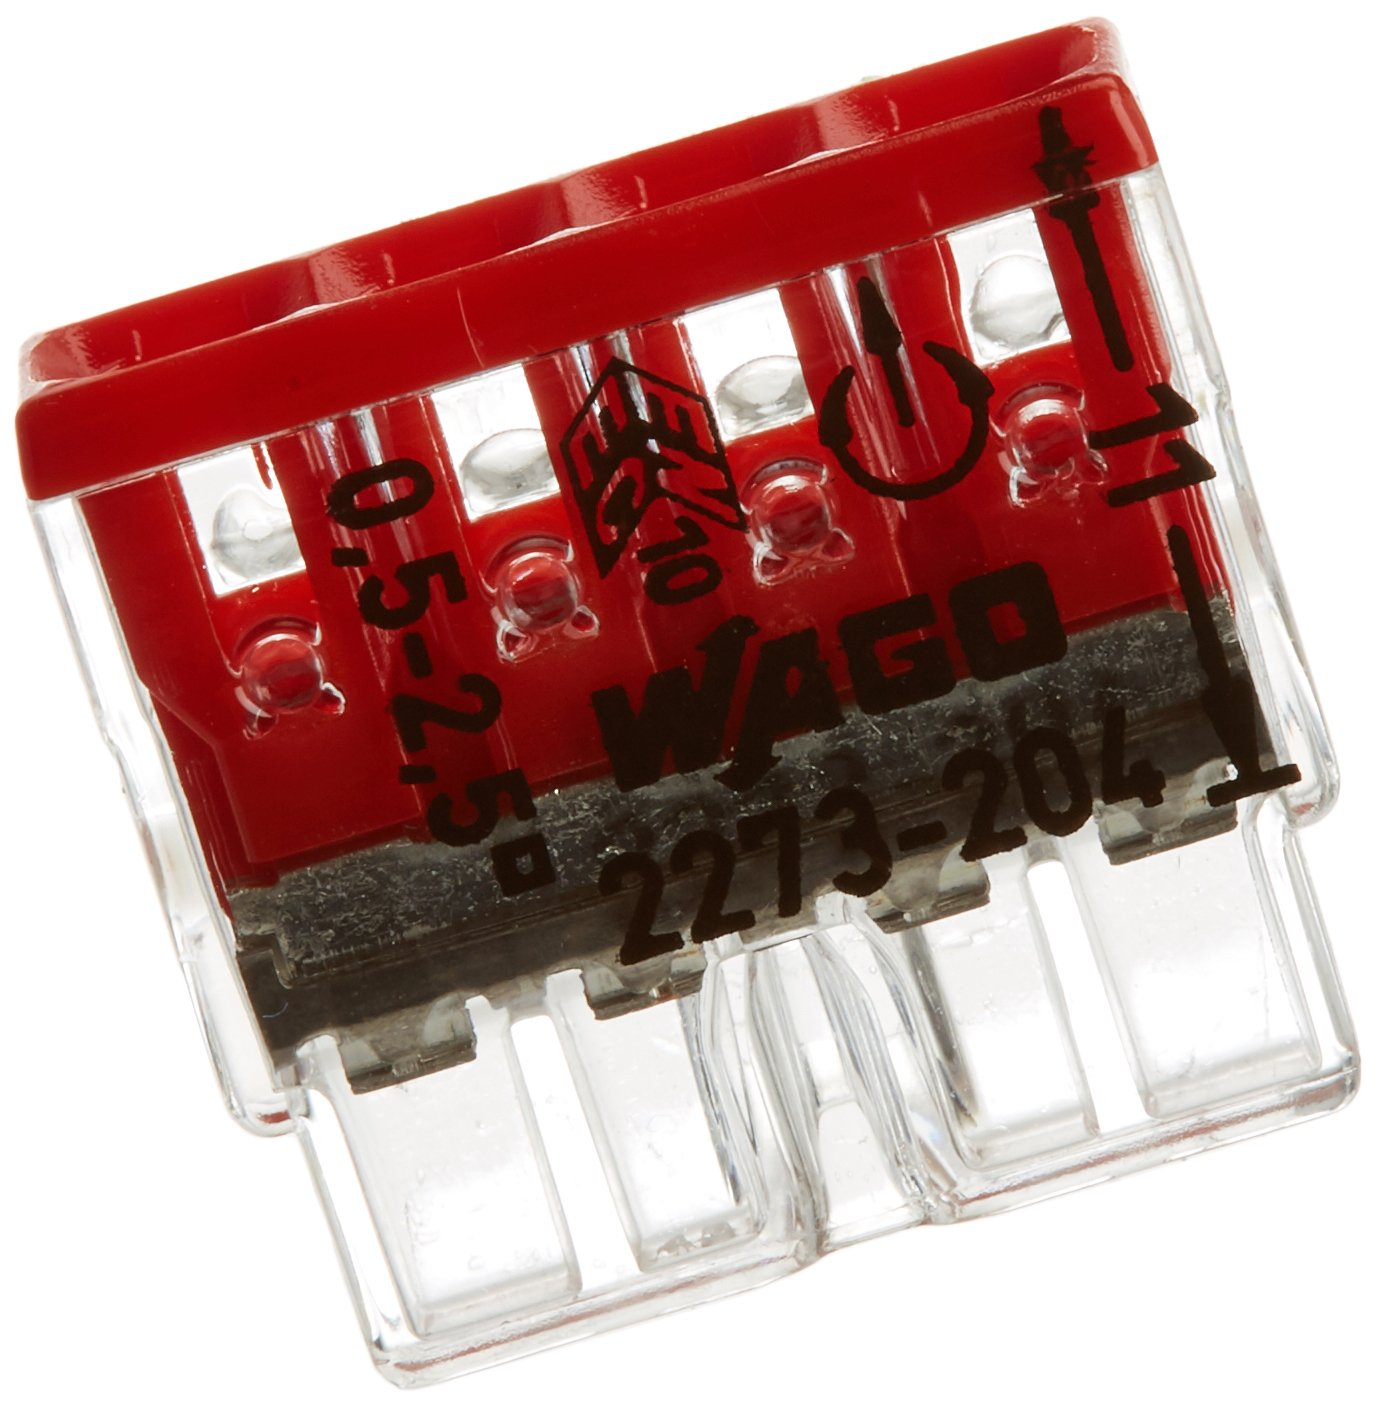 WAGO 2273-204  Compact Socket Terminal 4  x 0.5-2.5  mm²   No. 2273-204  Red (Pack of 100)